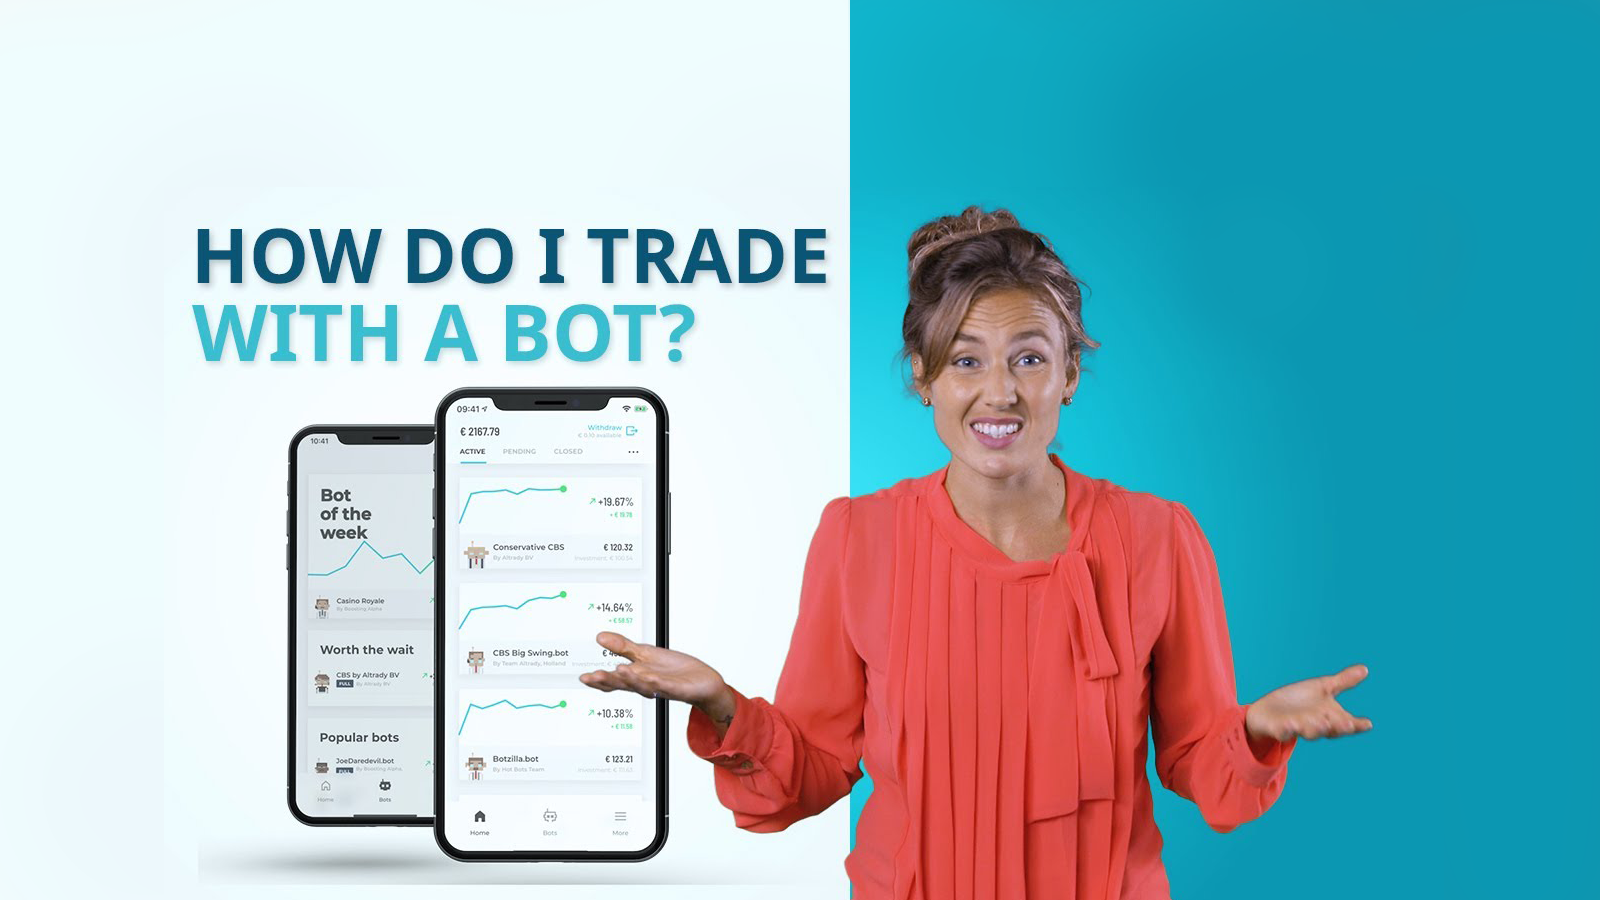 How do I trade with the BOTS app?